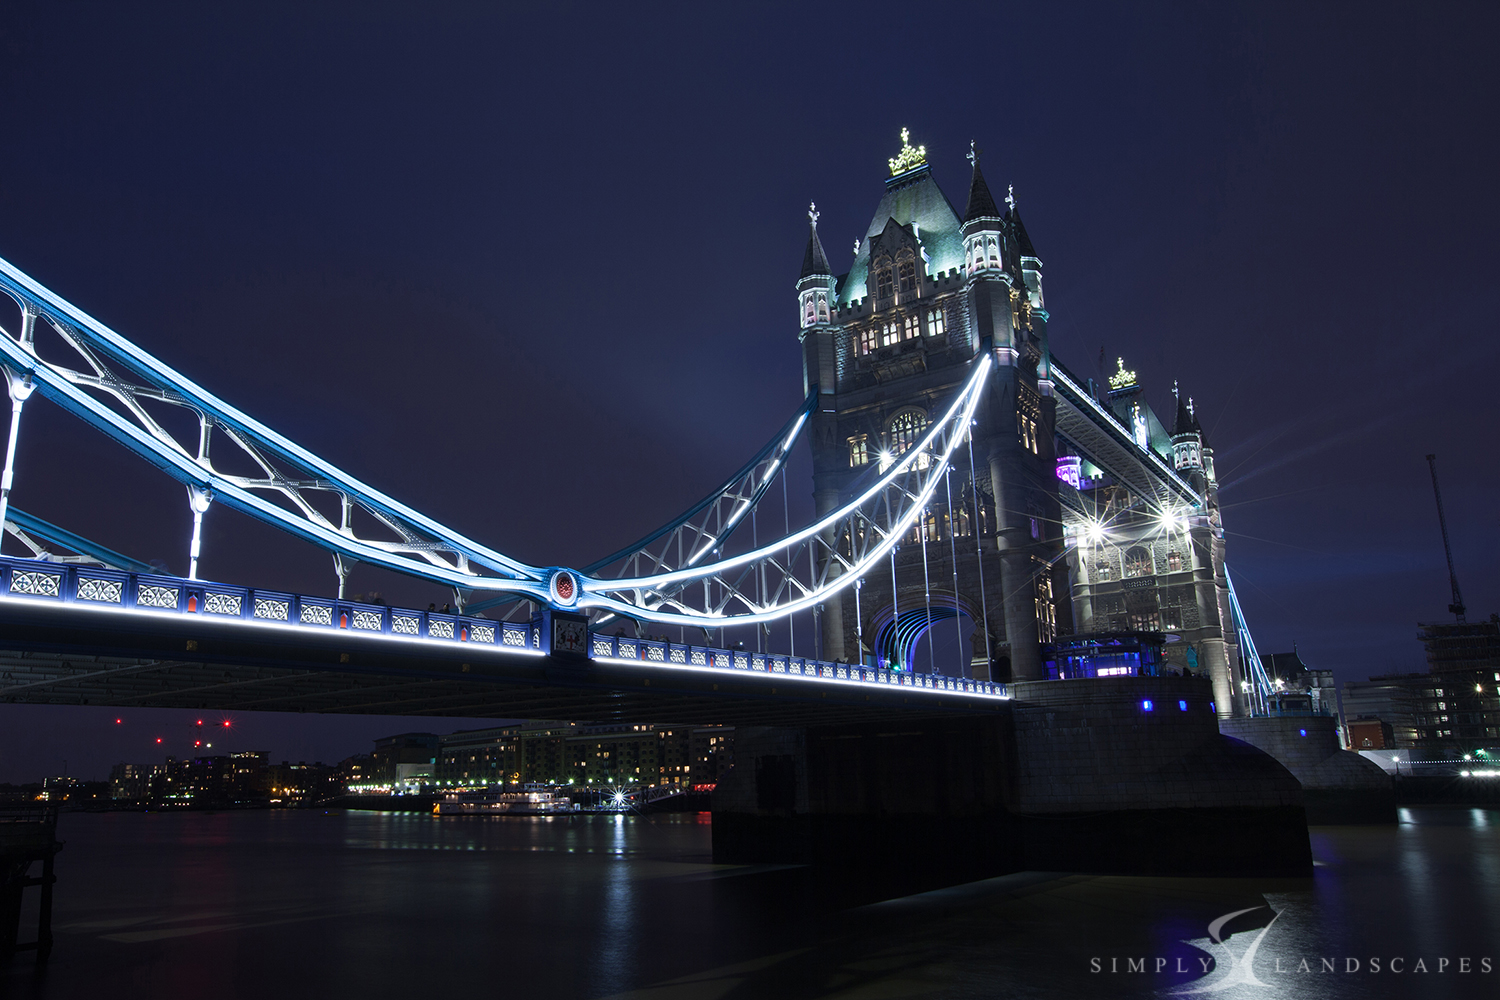 Tower Bridge lights up